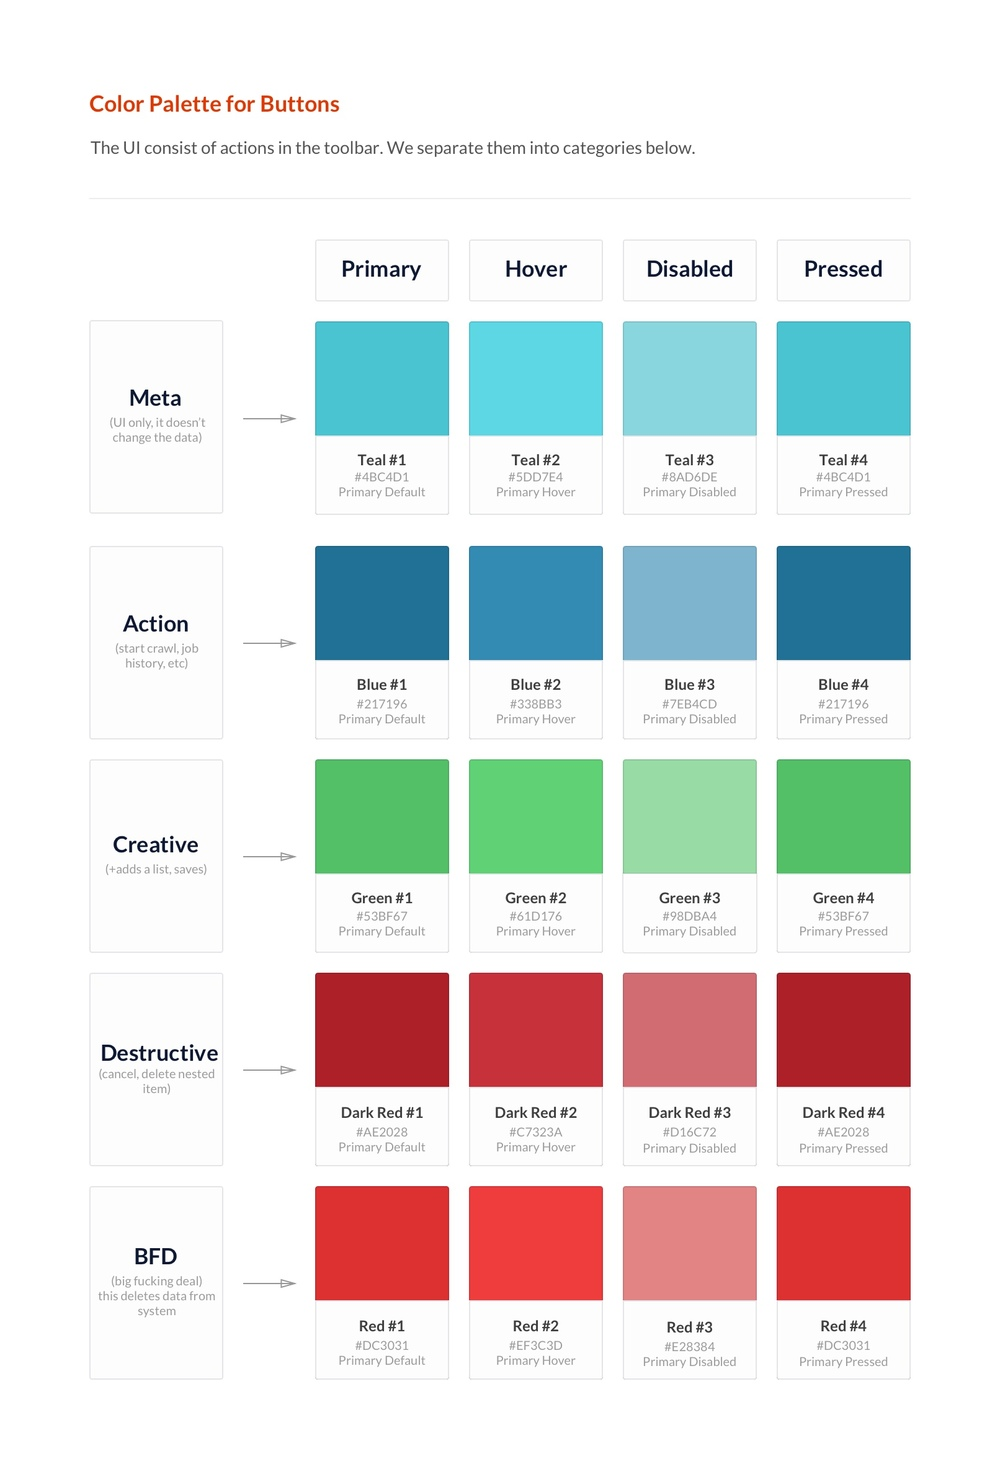 color palette getting more defined based on button actions and their hierarchy.